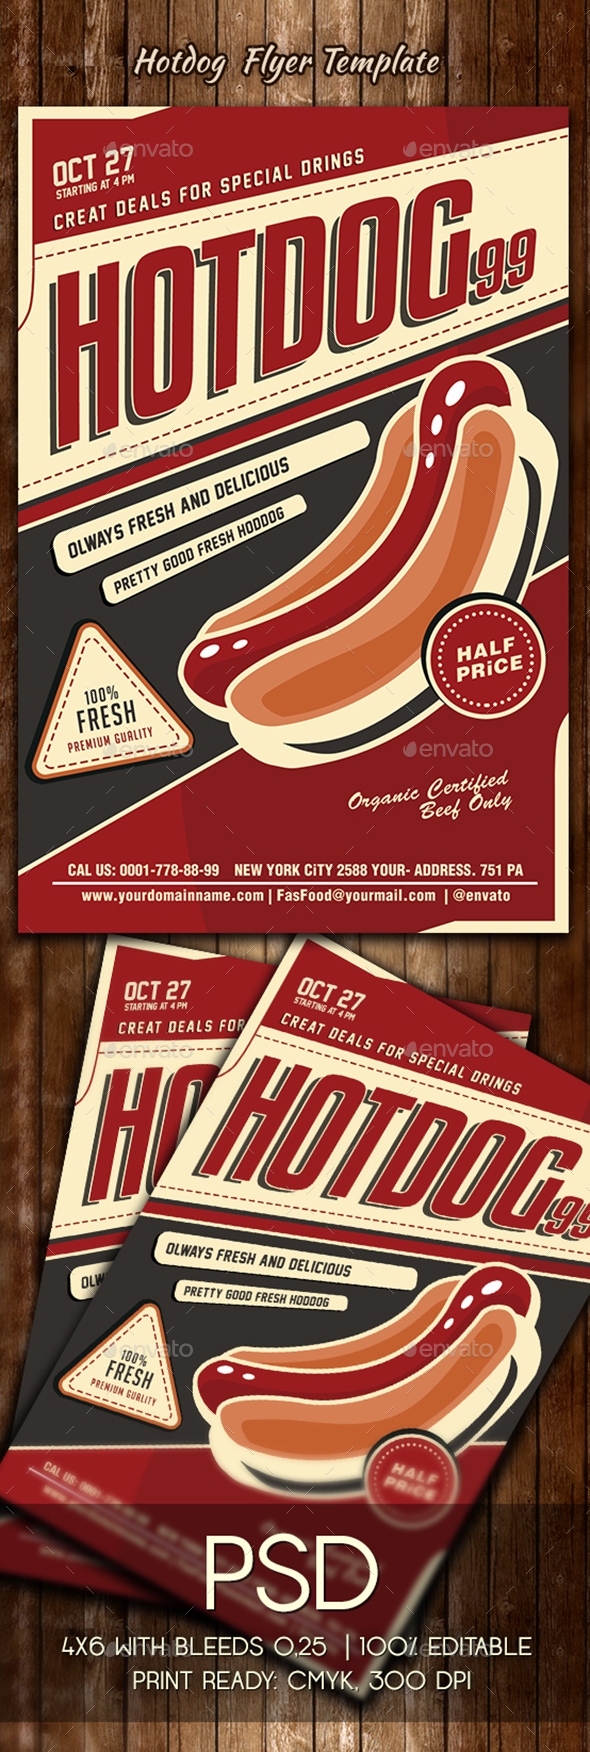 Hotdog Flyer Template